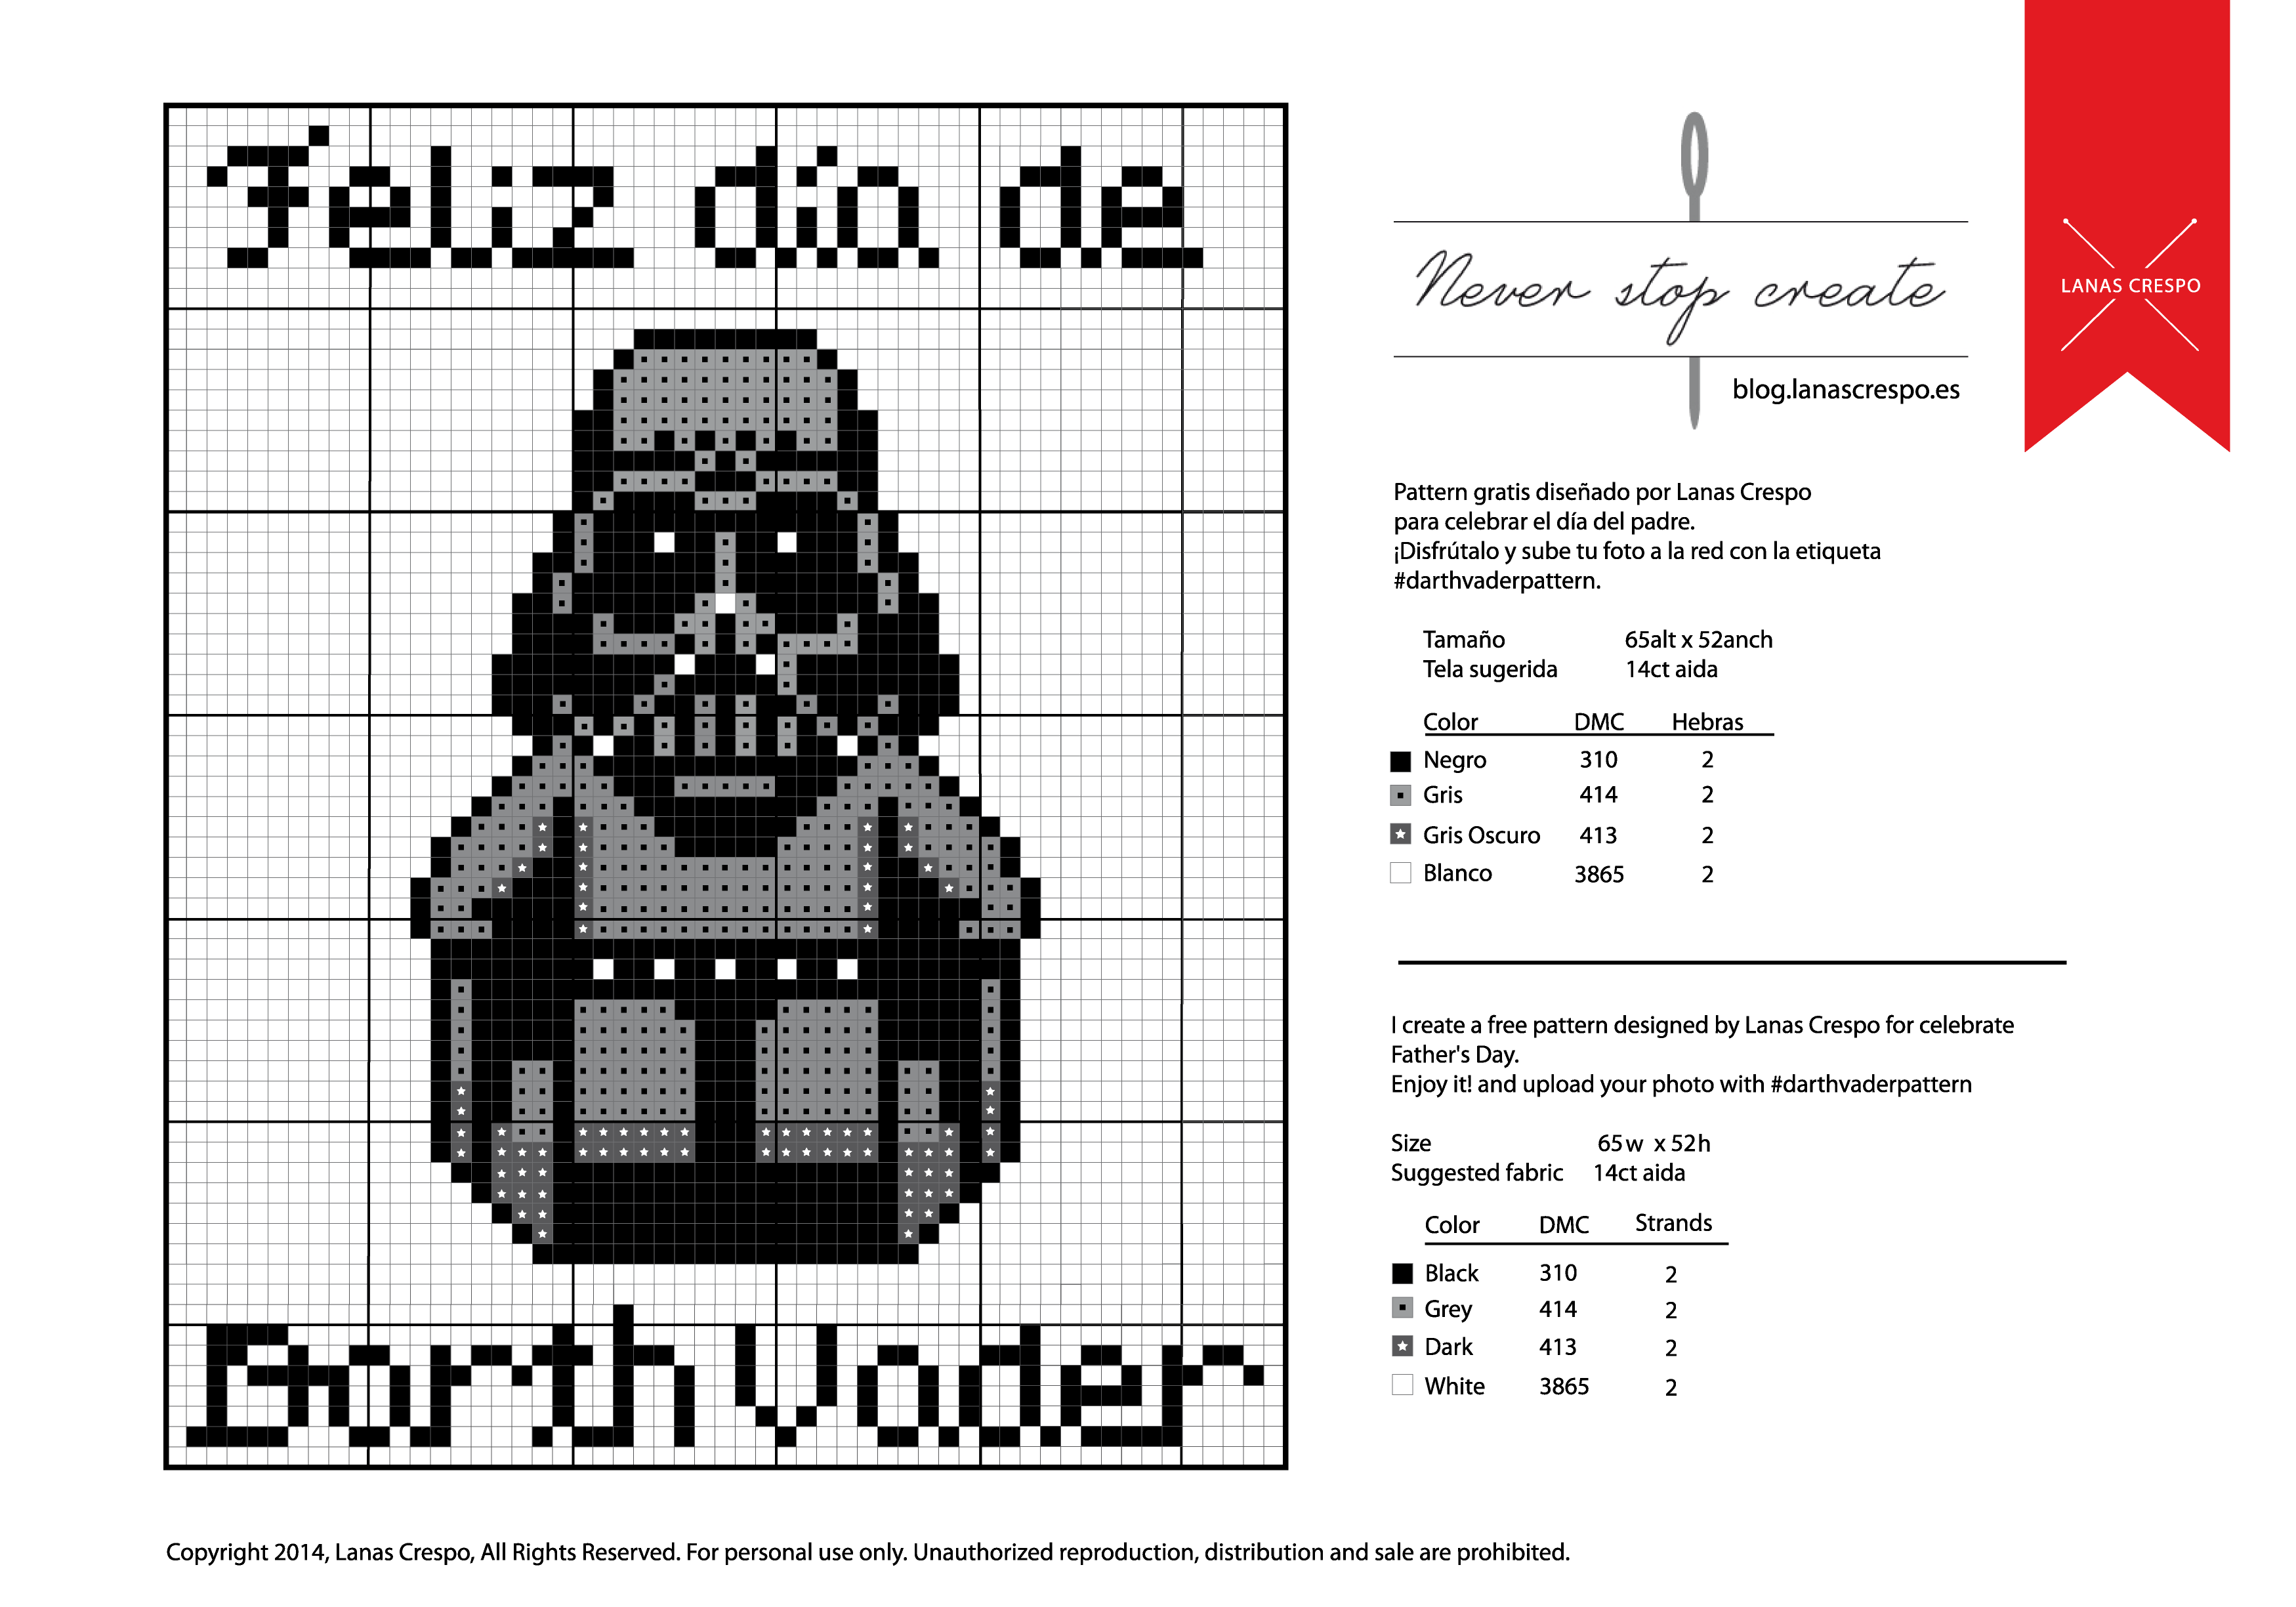 Special Cross Stitch Pattern for Father's Day